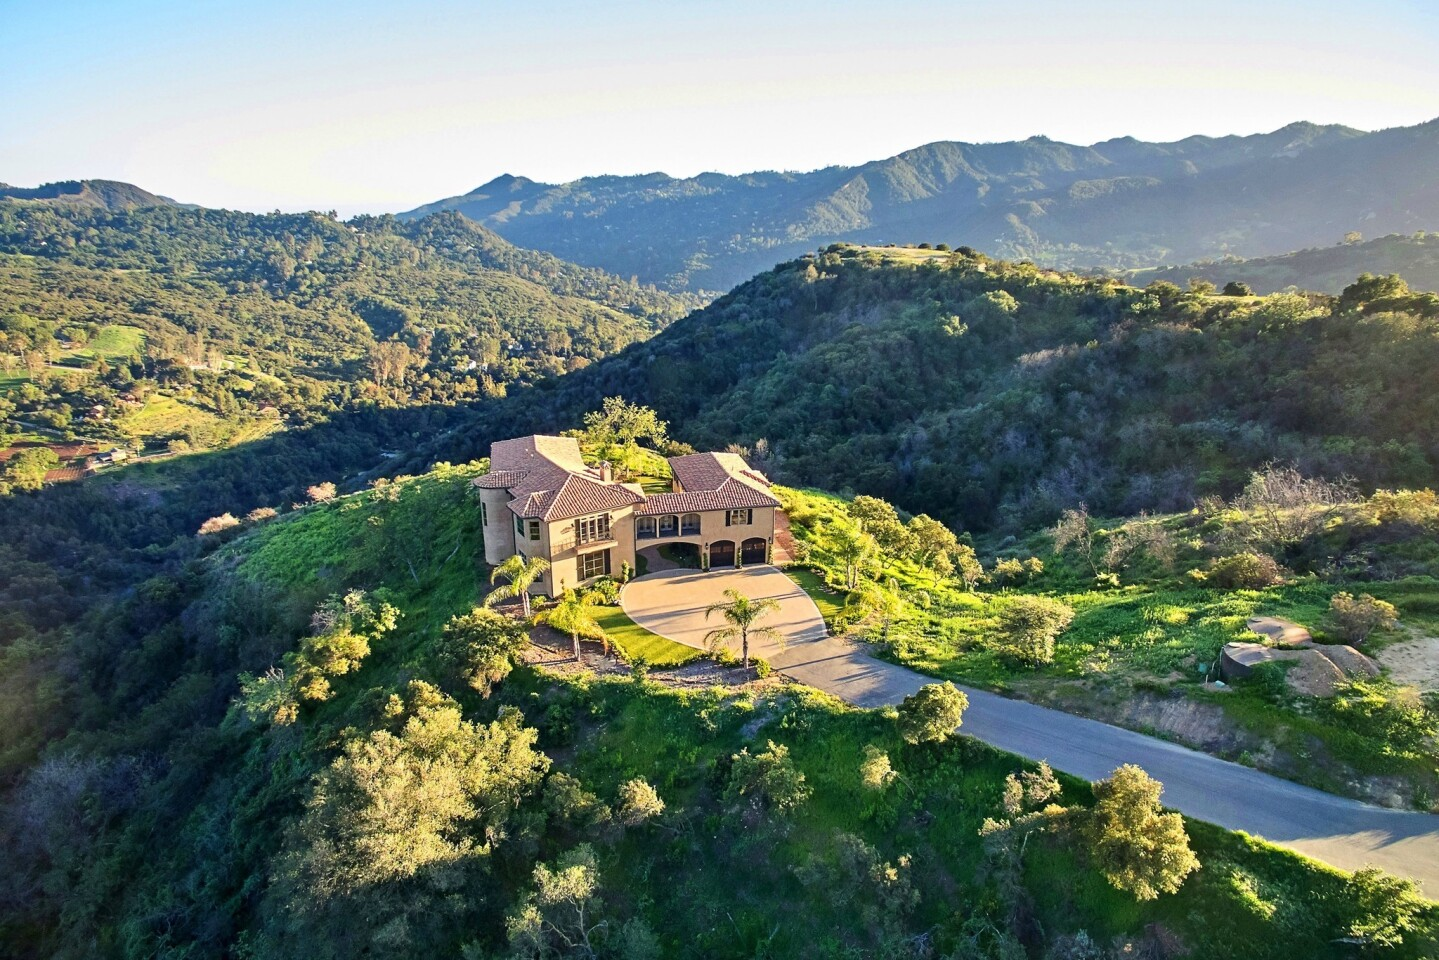 Home of the Day: Getting away from it all -- in style